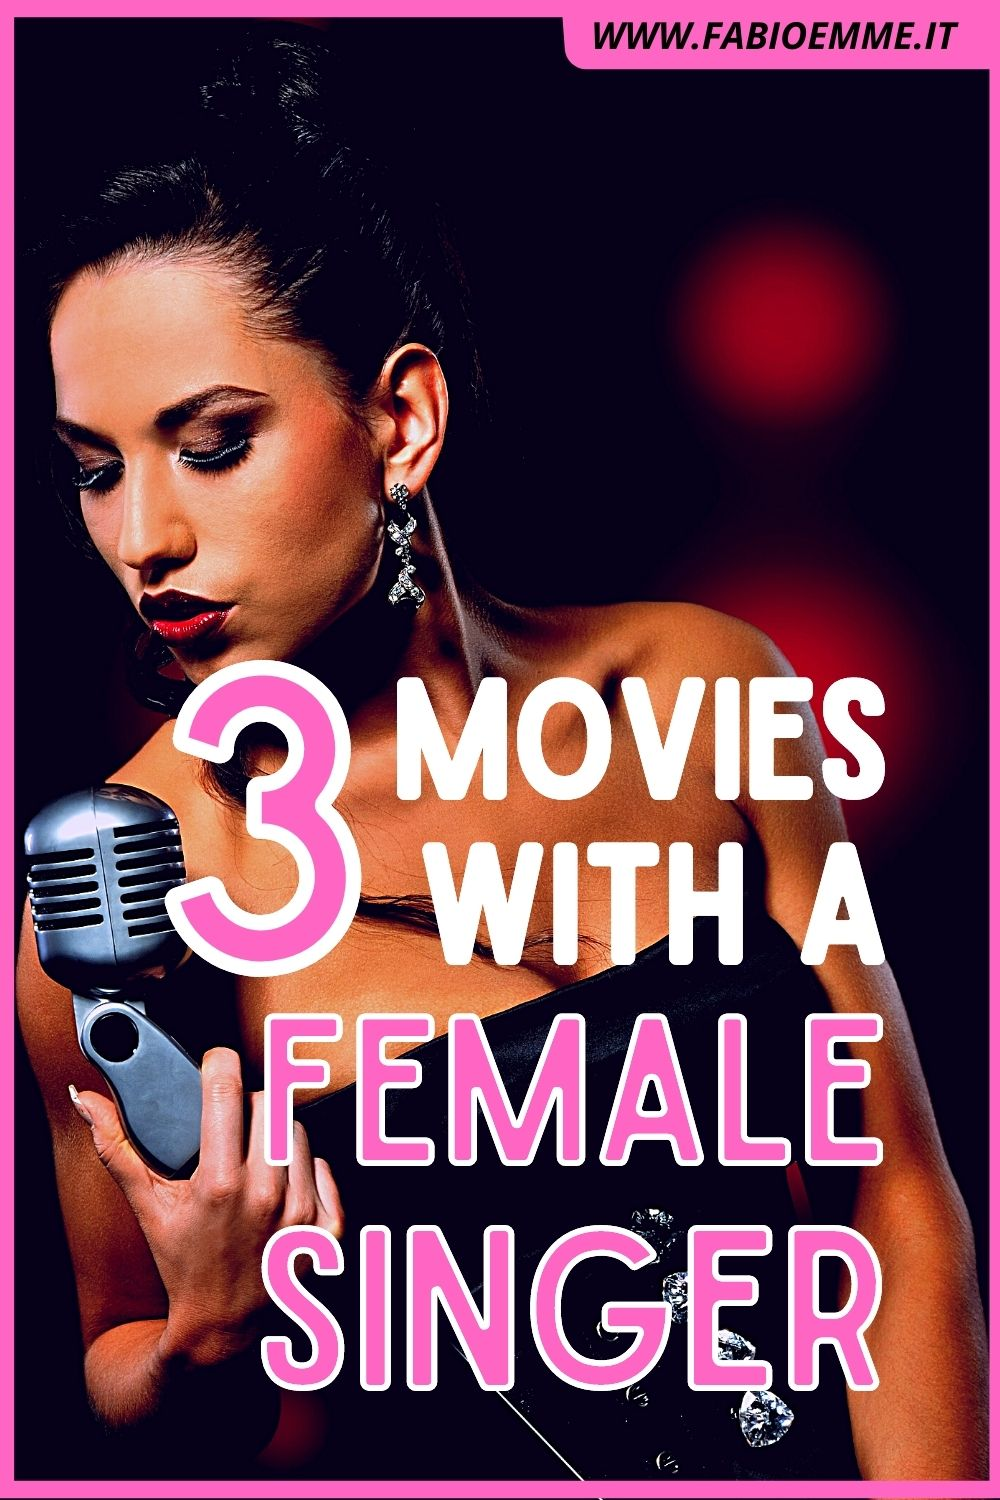 3 Movies with a Female Singer